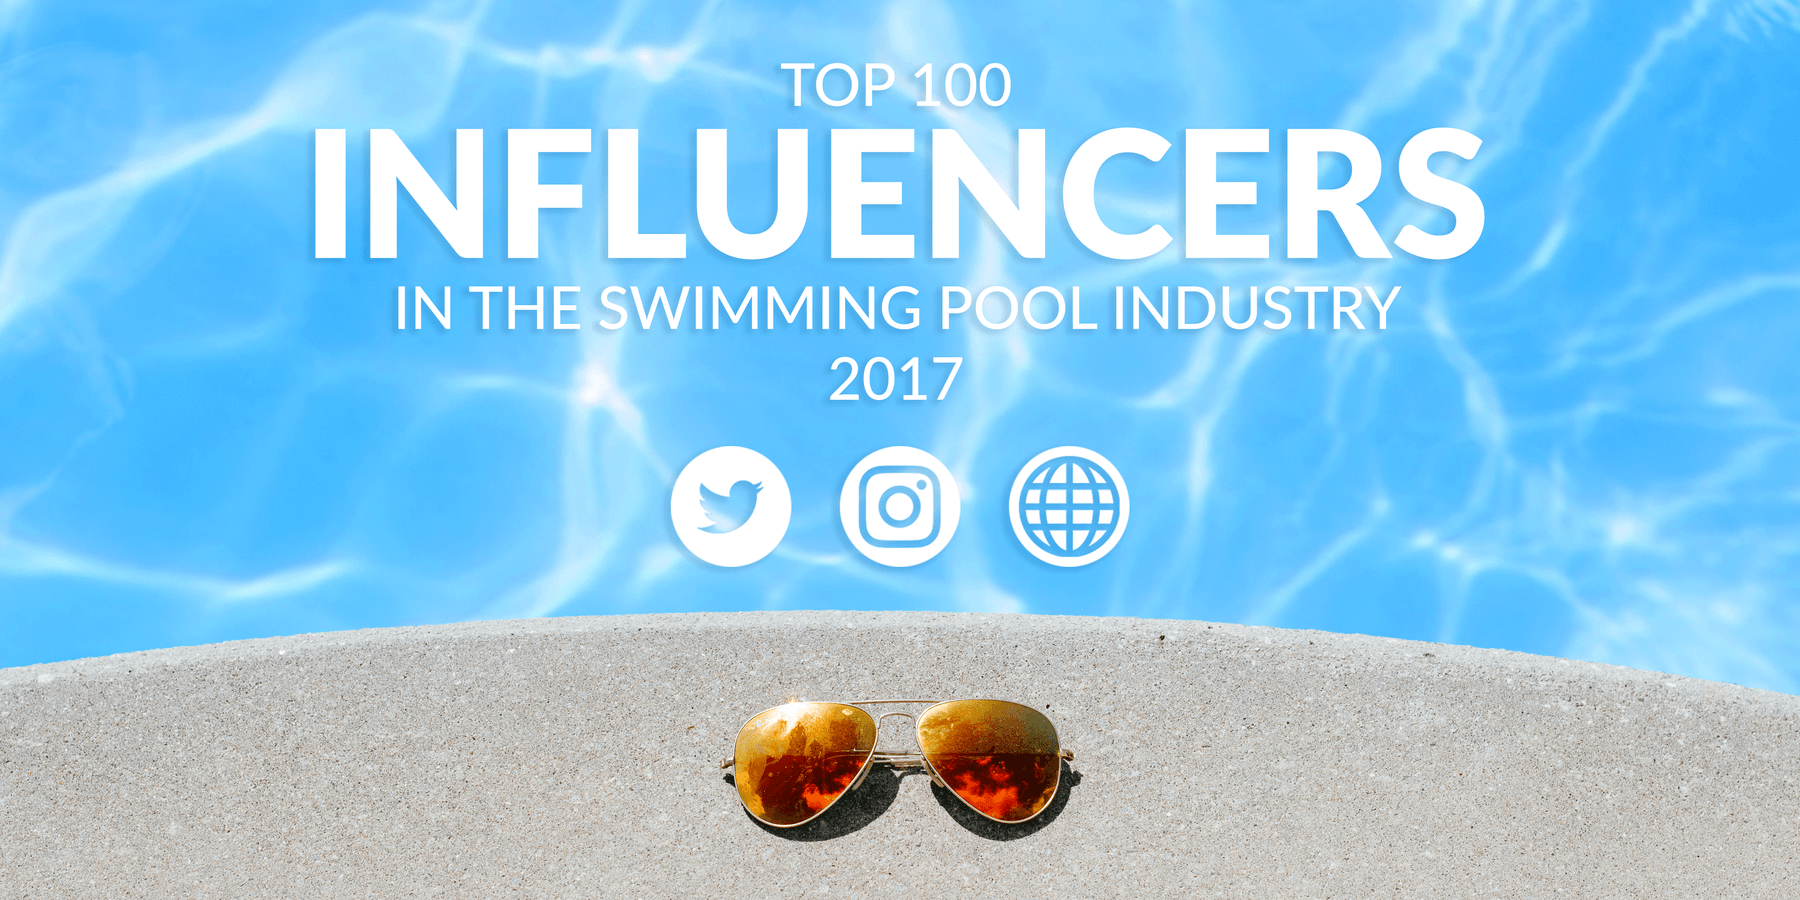 Top 100 Influencers to Follow in the Swimming Pool Industry 2017